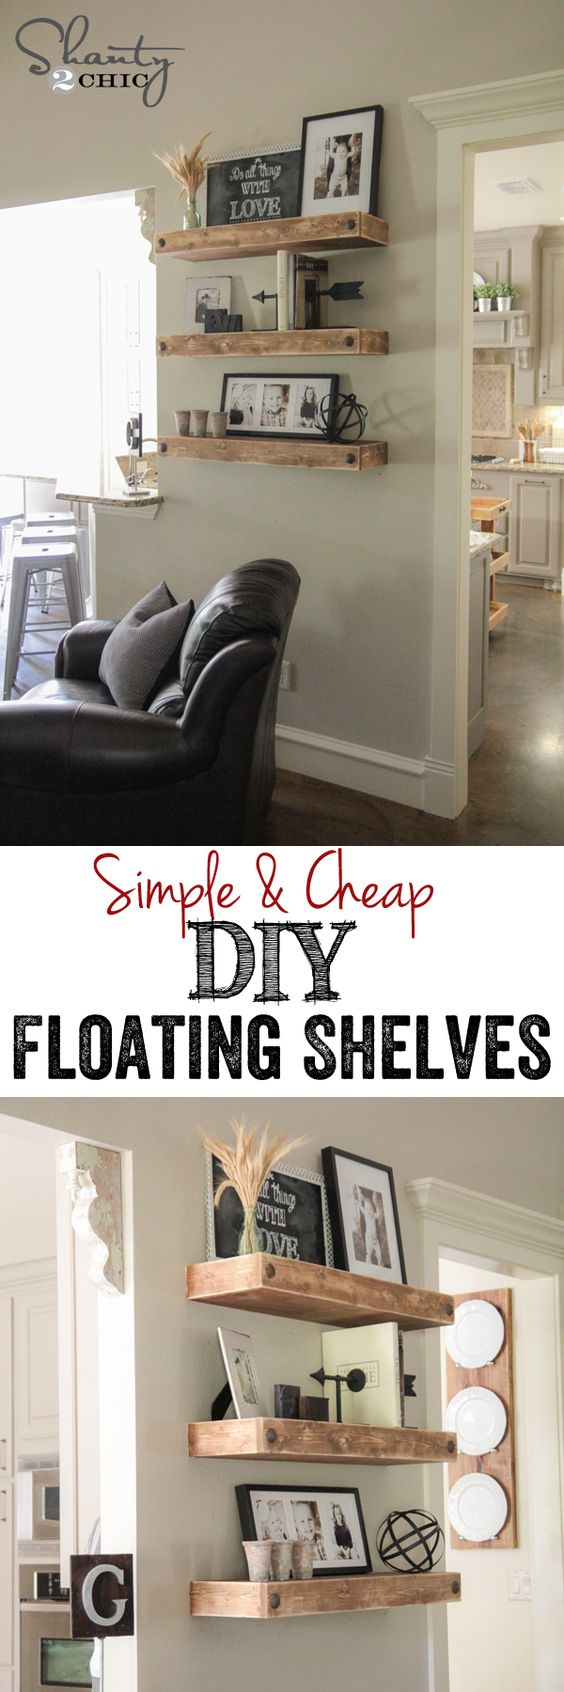 diy floating shelves | shelves and room